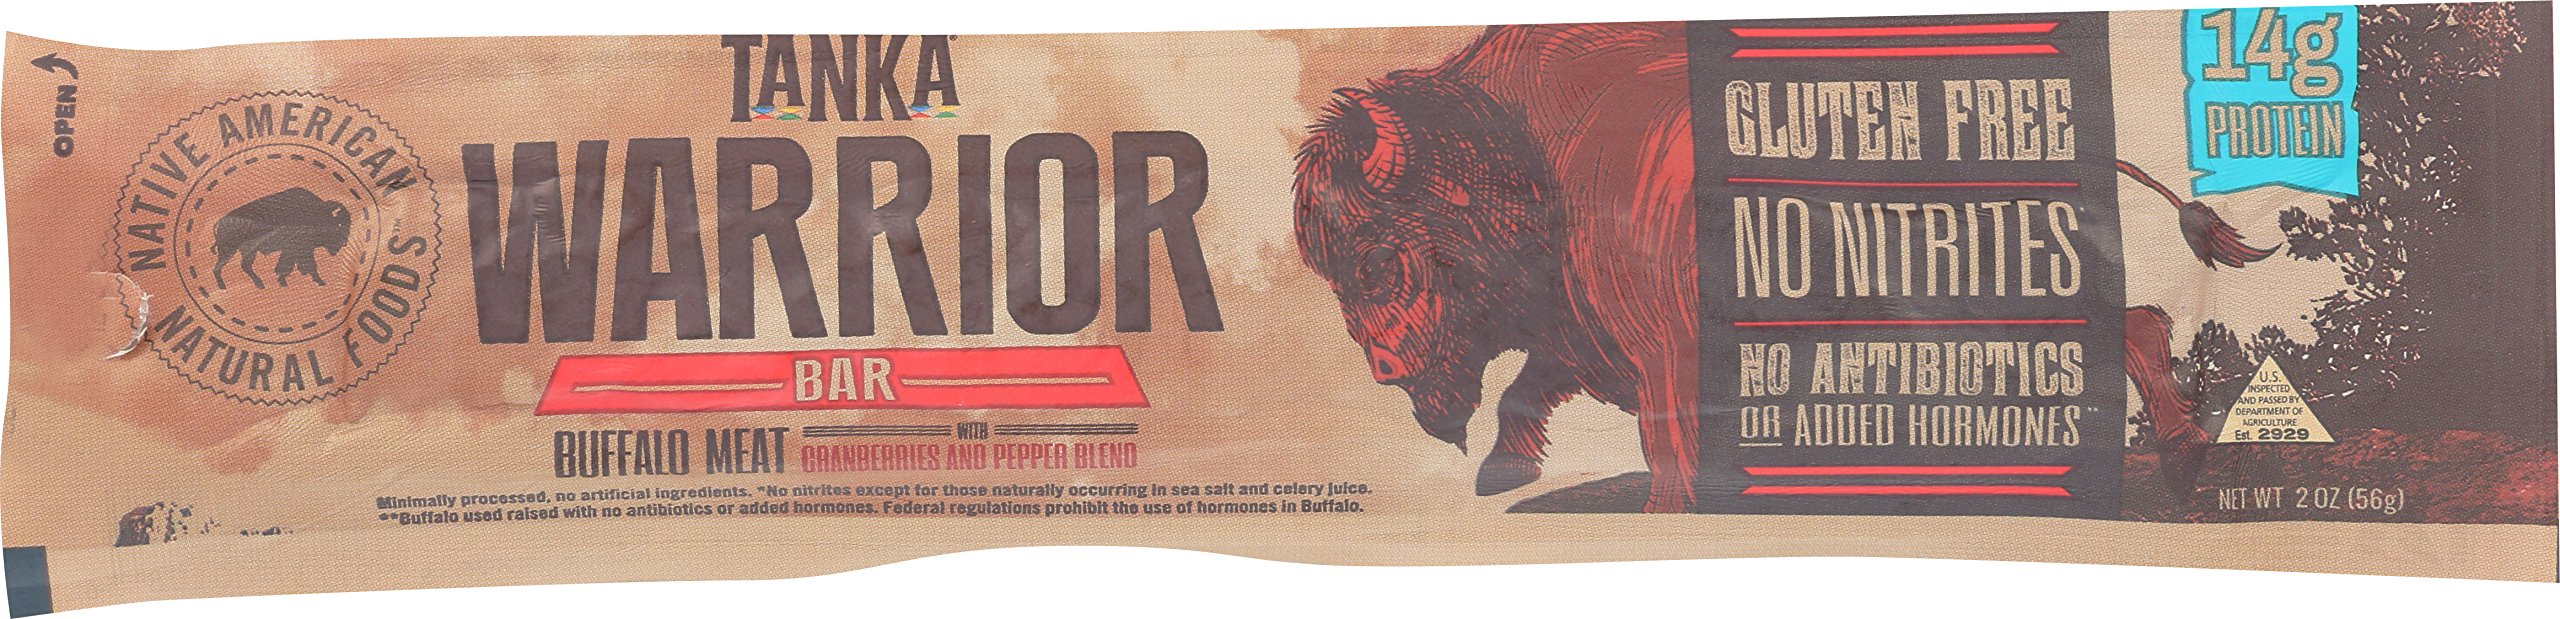 Bison Pemmican Meat Bar with Buffalo and Cranberries by Tanka, Gluten Free, Beef Jerky Alternative, Slow Smoked Original, 2 Ounce Bar, Pack of 12 by Tanka (Image #4)